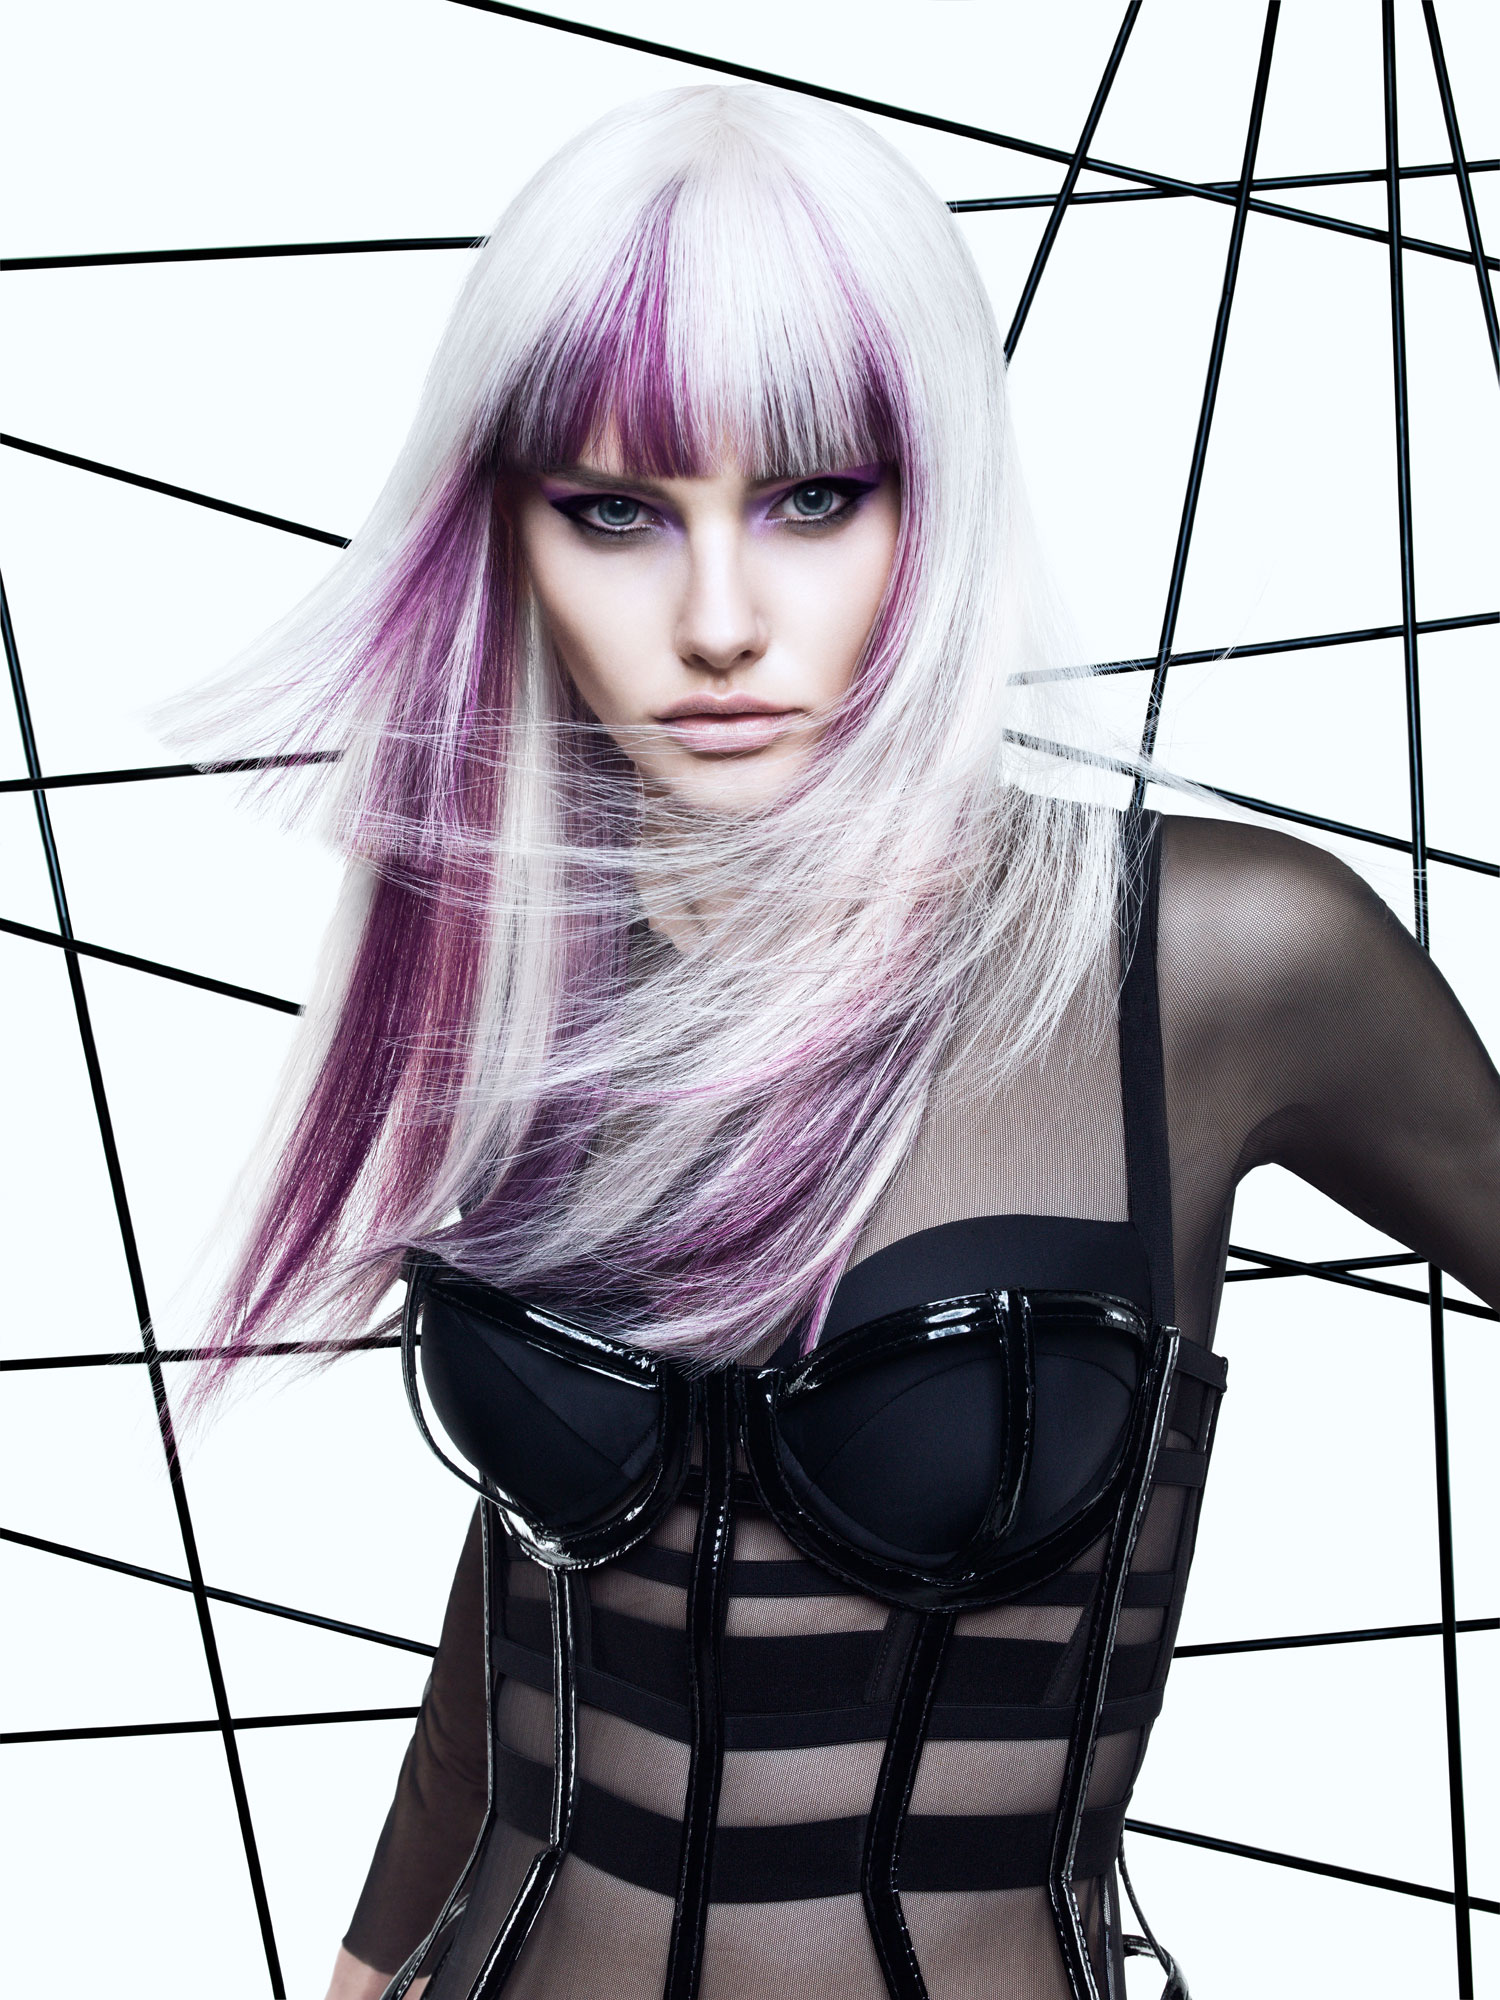 Kink Hair    Haircolor:  Luis Gonzalez  Cut and Style:  Allen Ruiz  Makeup:  Anastasia Durasova  Photo:  Yulia Gorbachenko Wardrobe: Sandy Aremeni